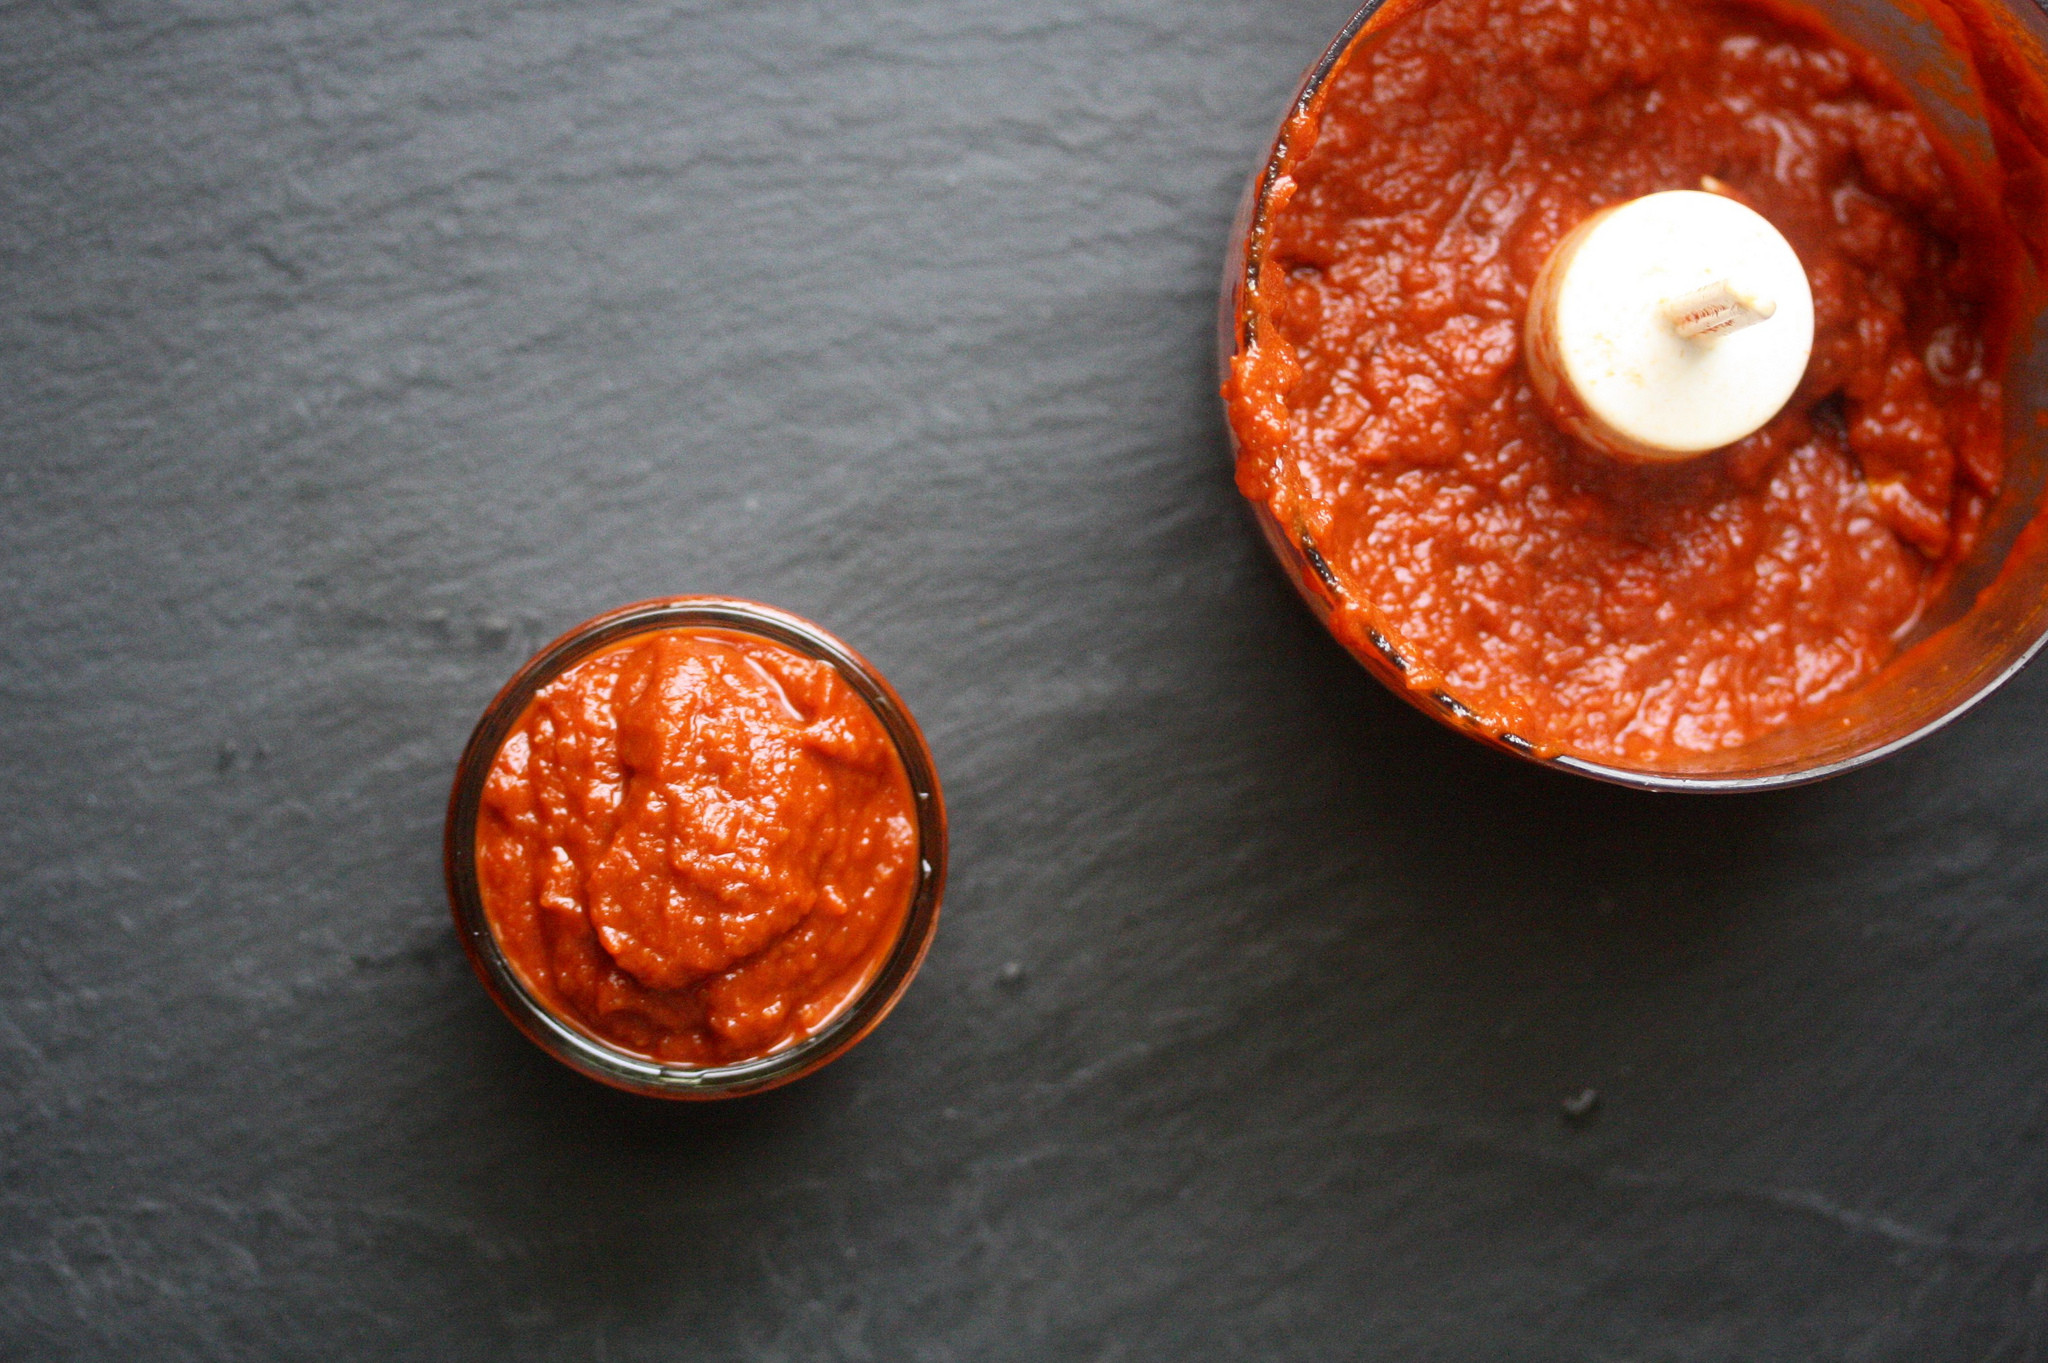 Bbq Sauce From Scratch  How to Make Barbecue Sauce from Scratch Easy Barbecue